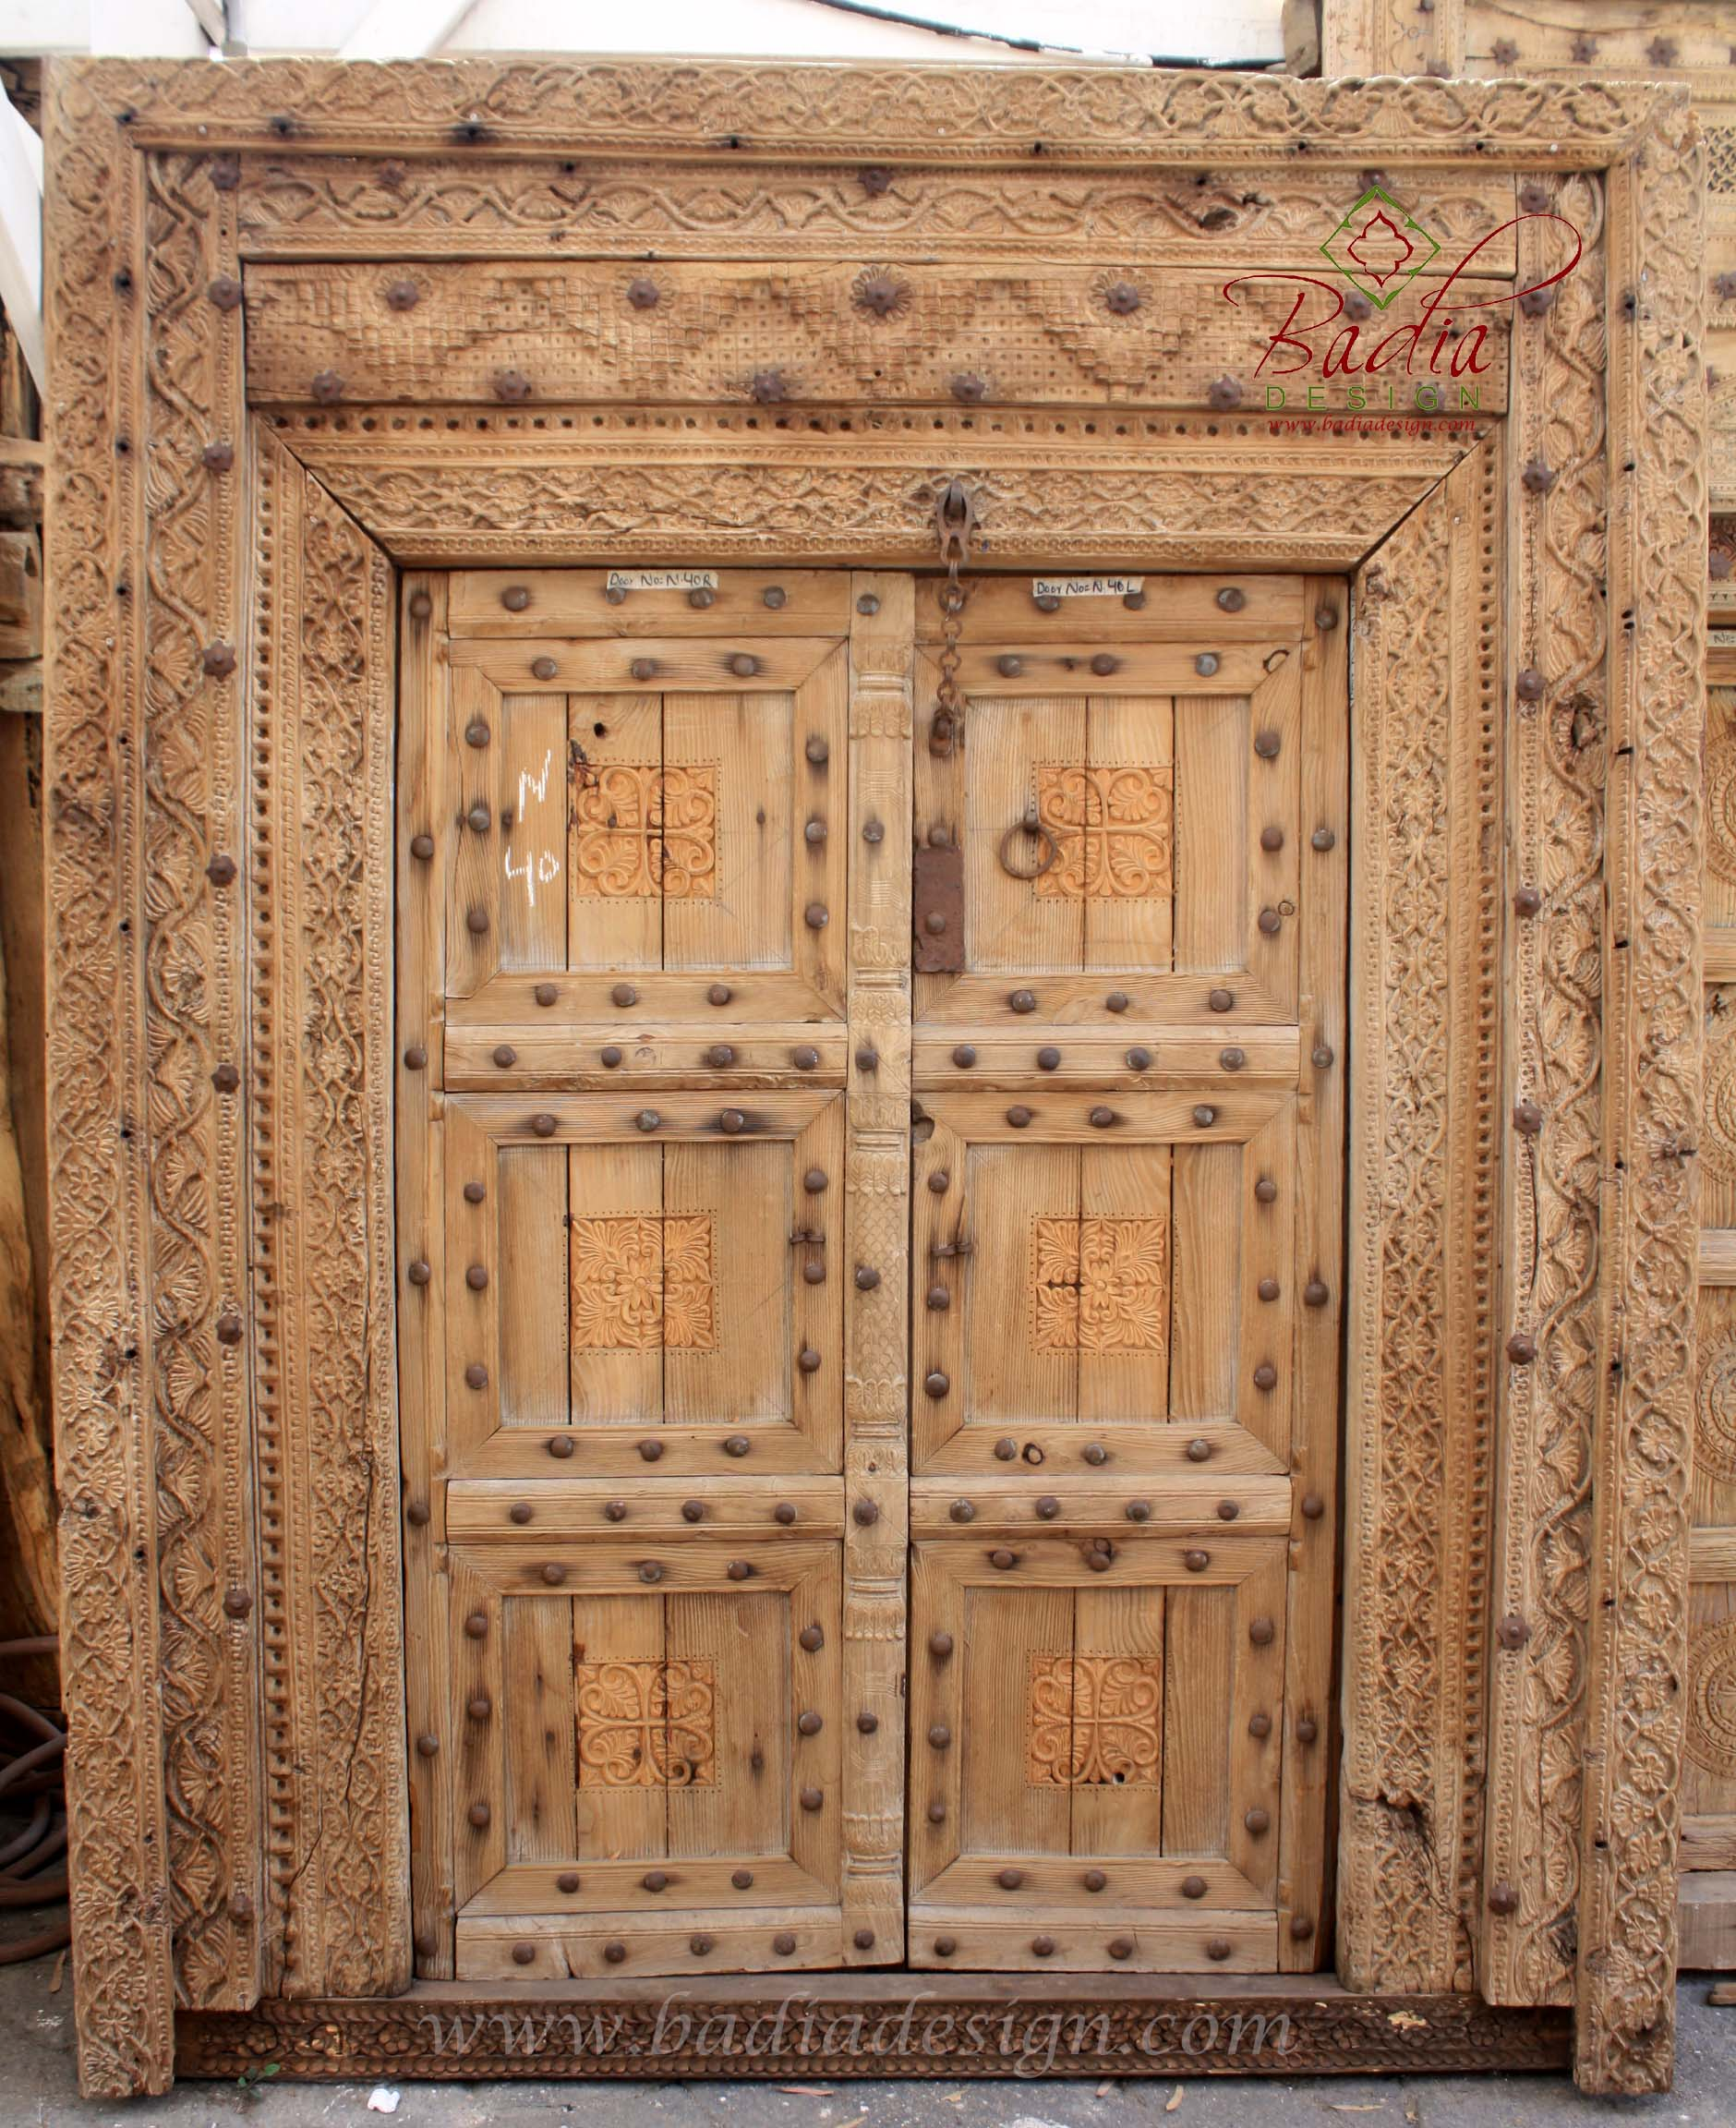 large-antique-wooden-door-cwd014.jpg